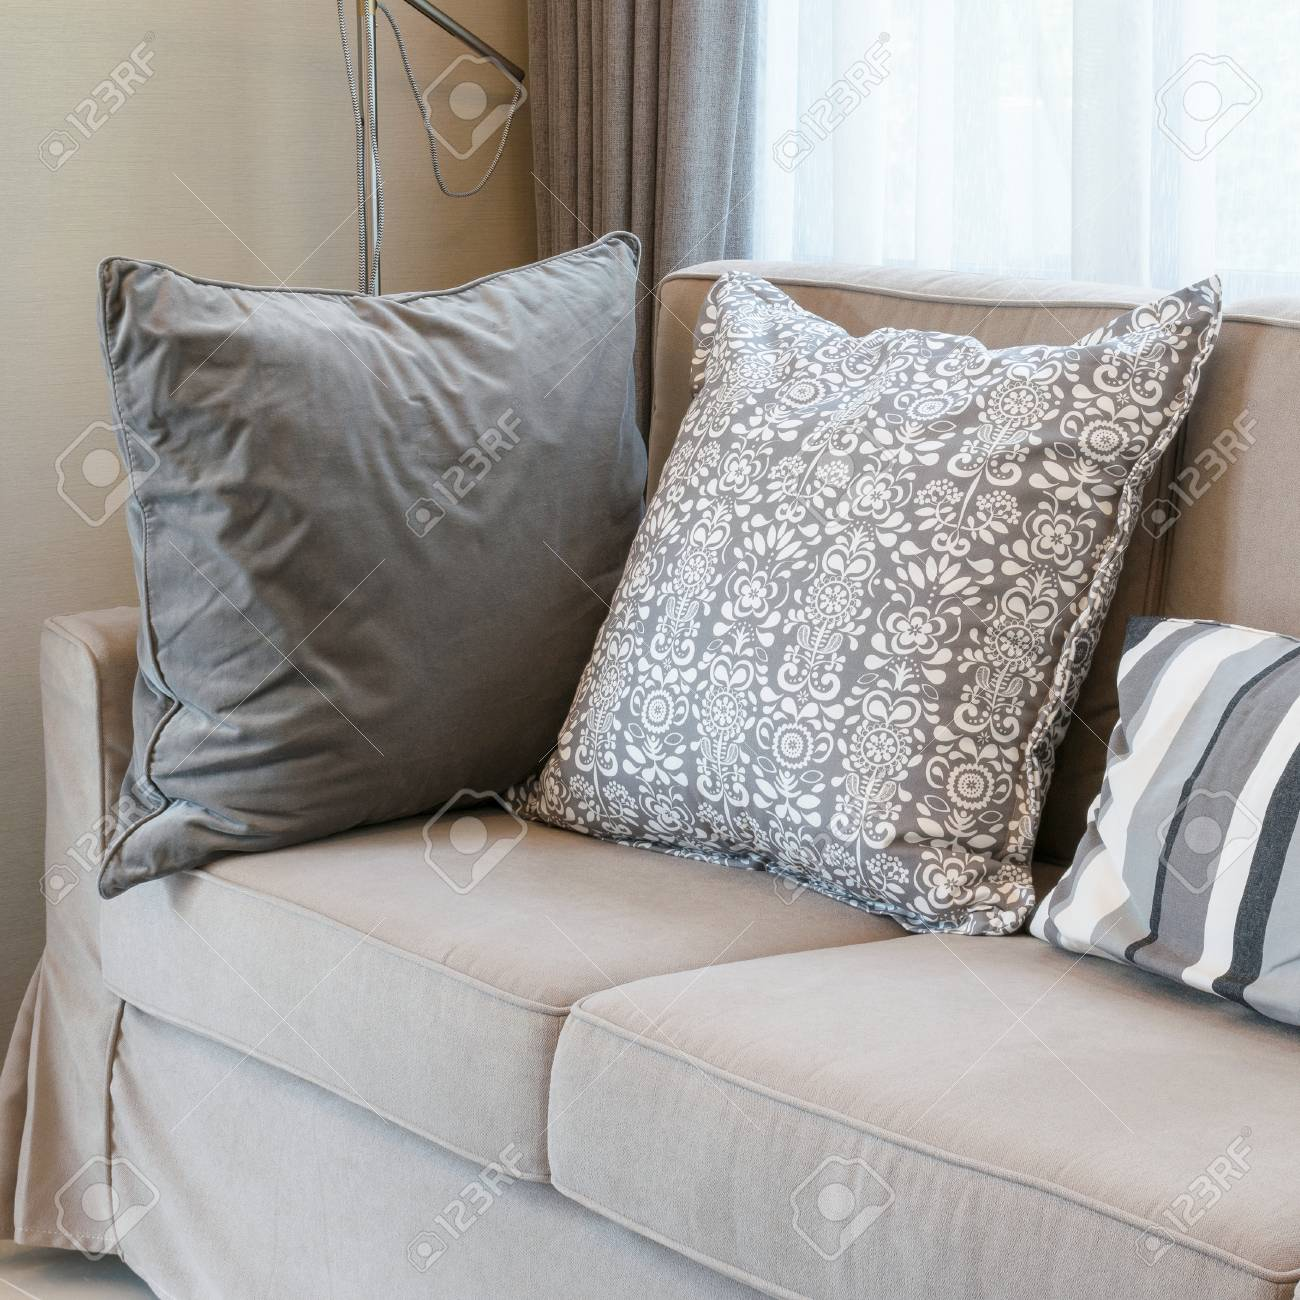 Living Room With Brown Sofa And Grey Patterned Pillows Stock Photo Picture And Royalty Free Image Image 58012329